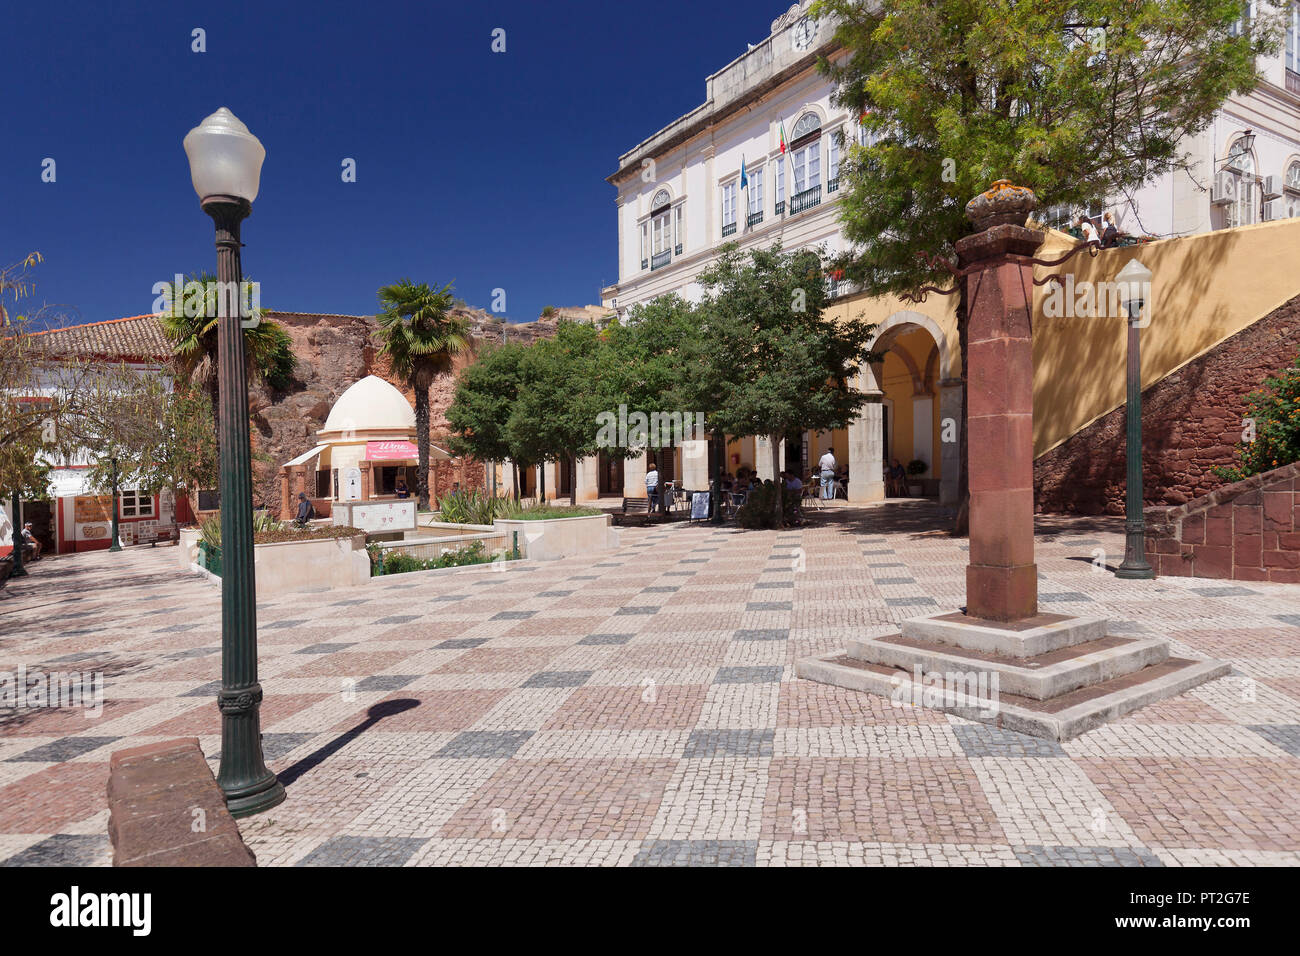 Square in front of the town hall, Silves, Algarve, Portugal Stock Photo